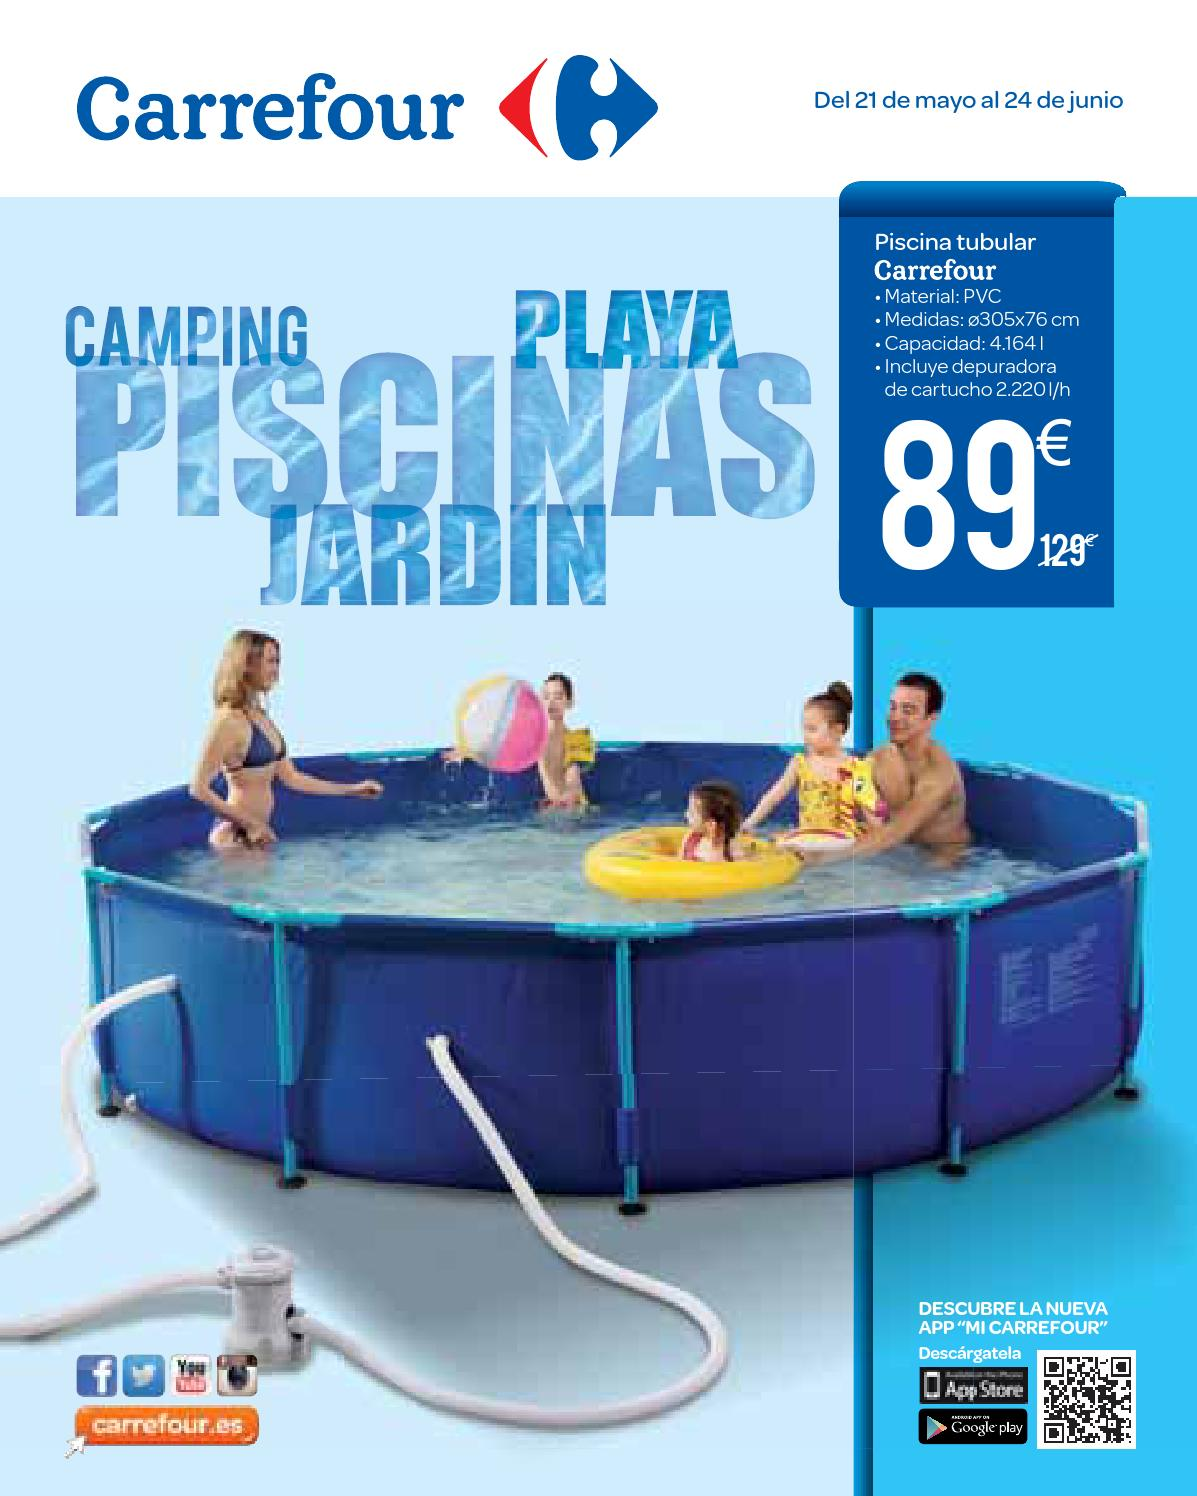 Piscinas y jardin by losdescuentos issuu for Piscinas de plastico carrefour